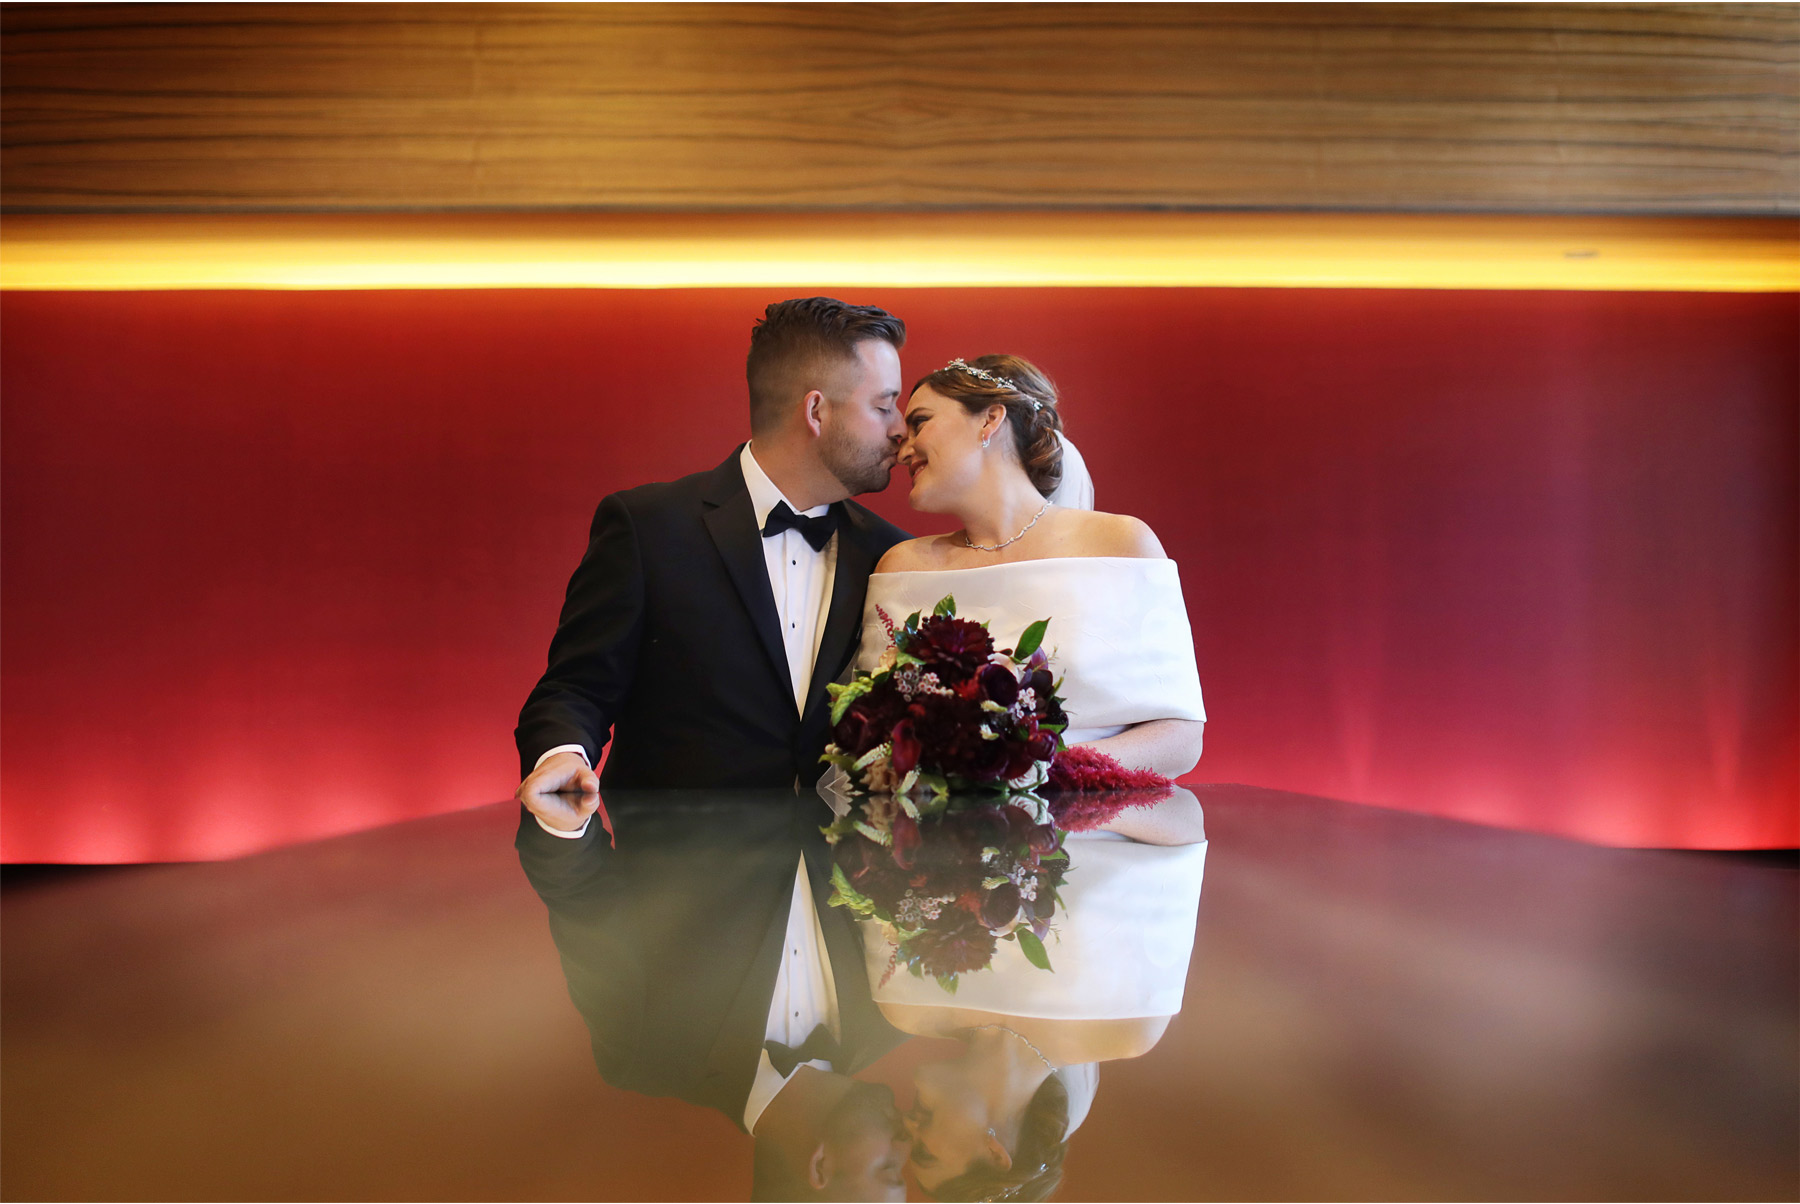 10-Minneapolis-Minnesota-Wedding-Photography-by-Vick-Photography-Loews-Hotel-First-Look-Caitlin-and-Alec.jpg